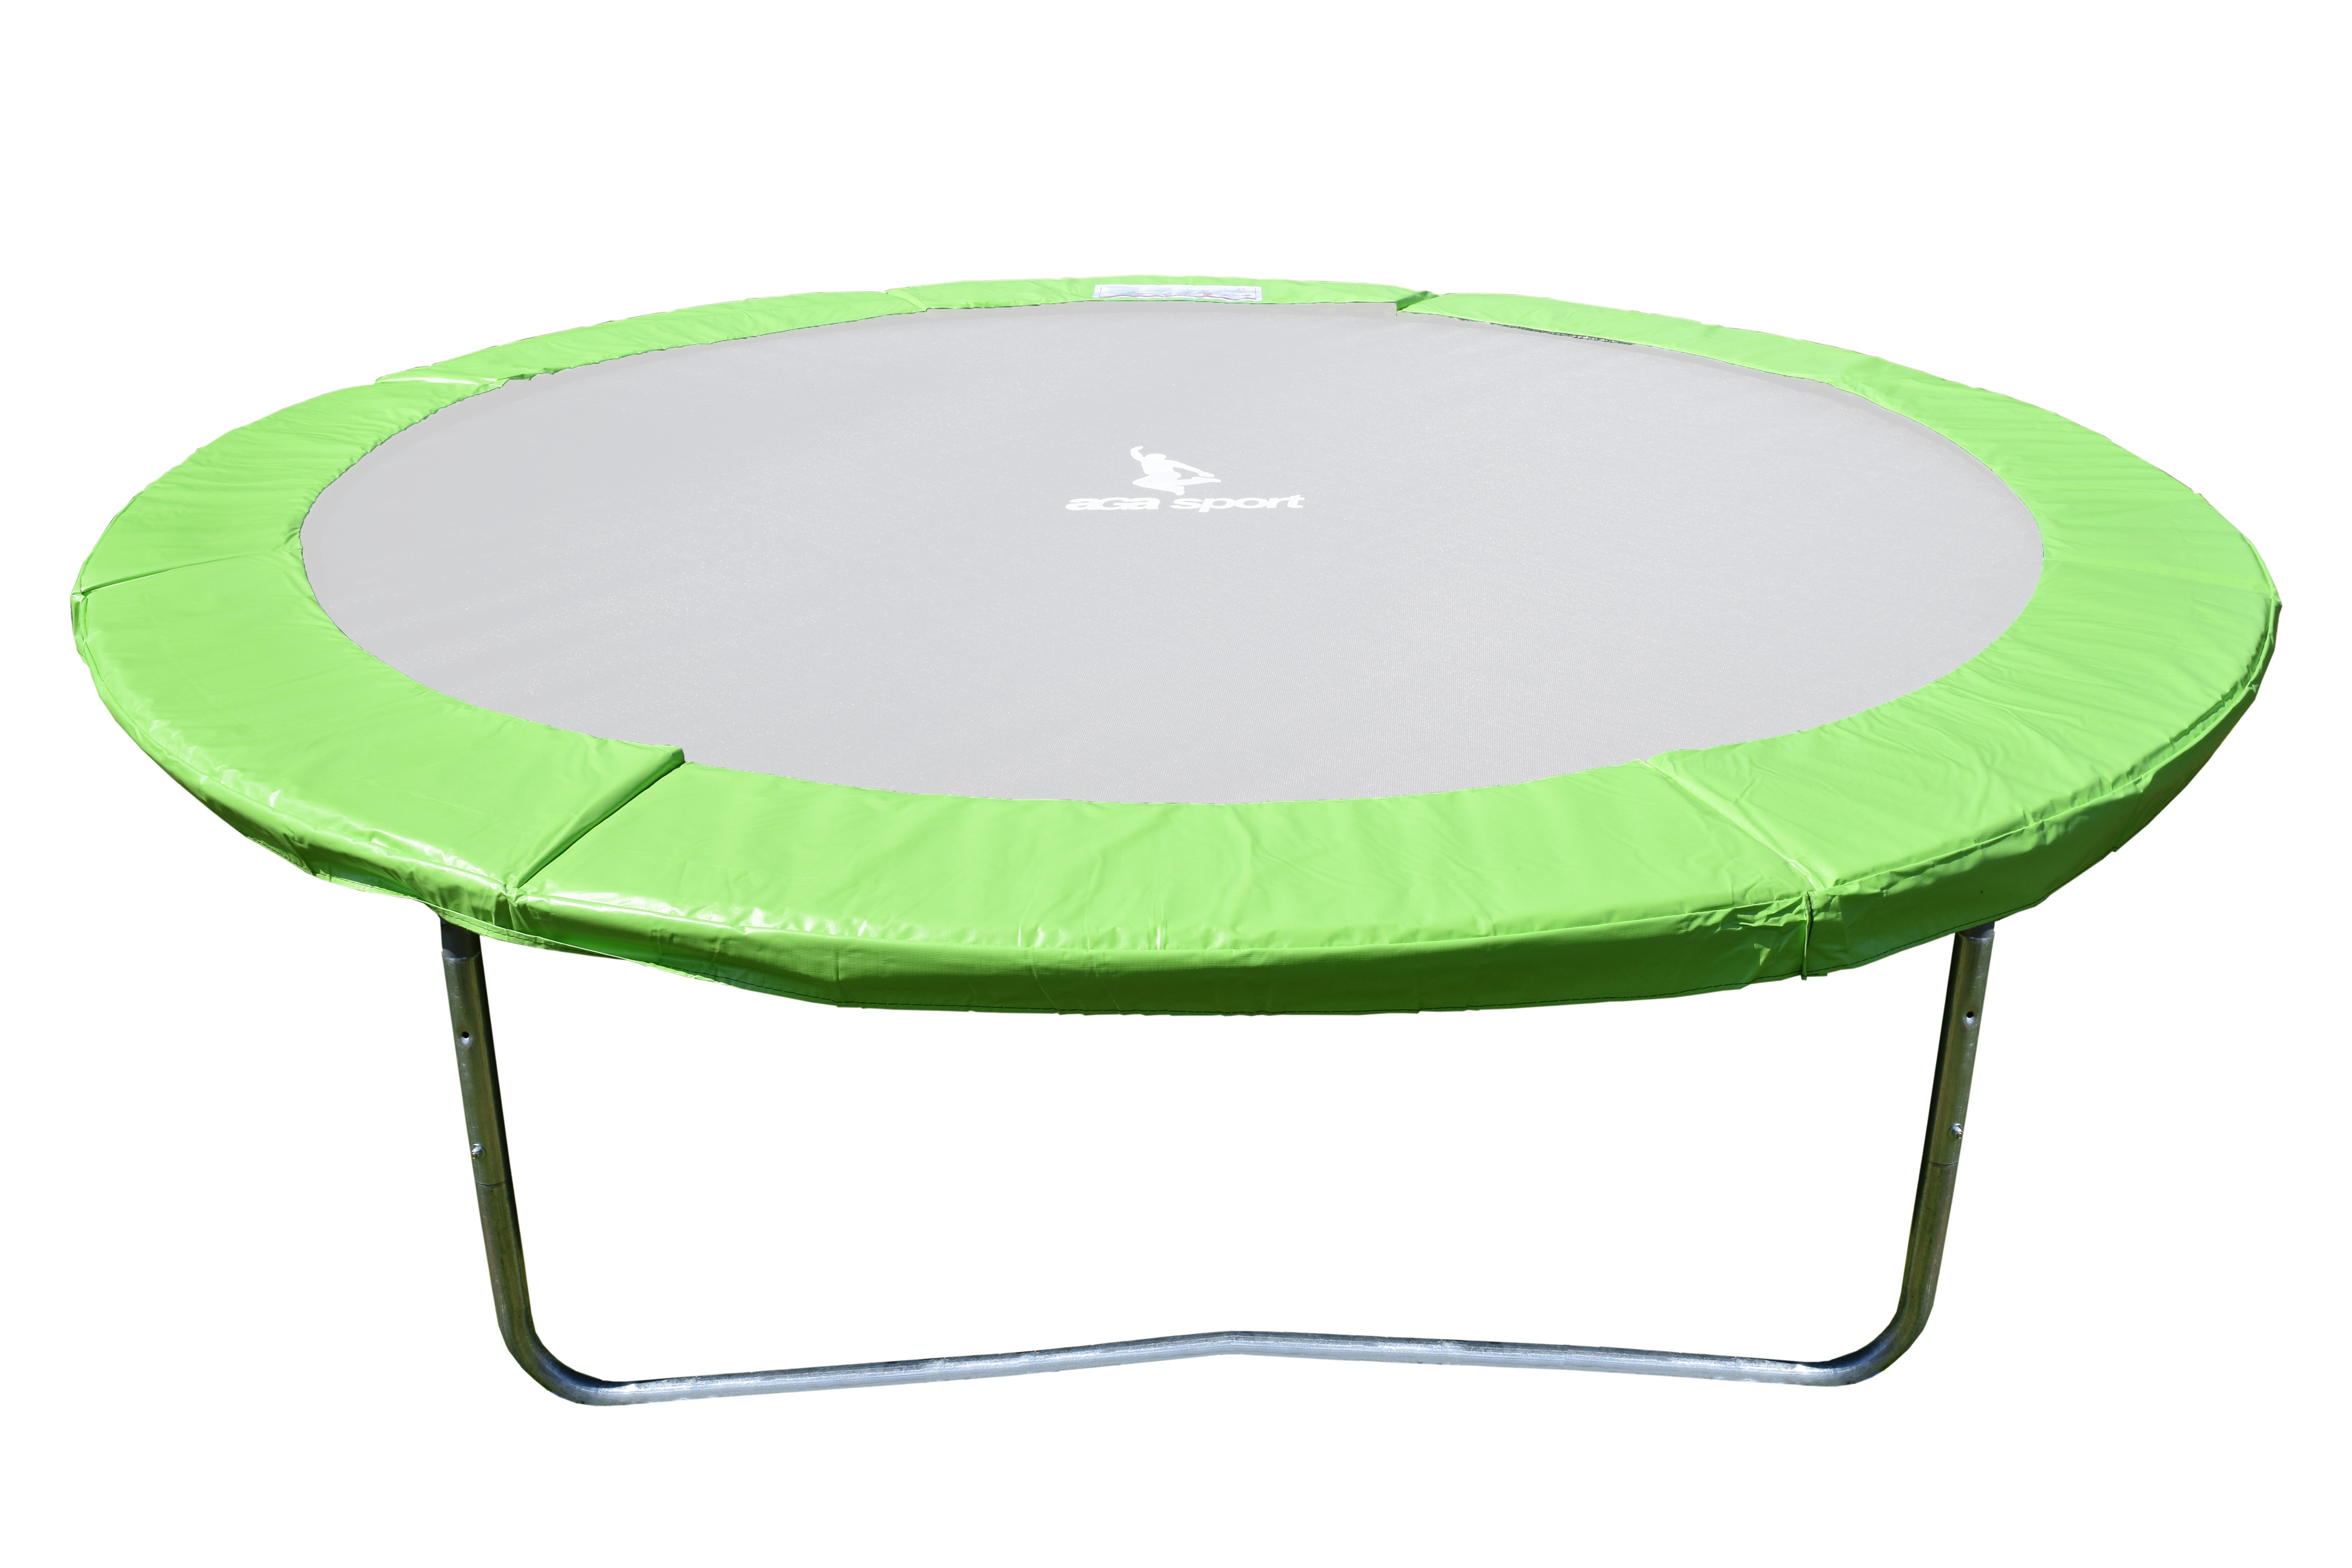 Aga Chránič pružin 305 cm Light Green